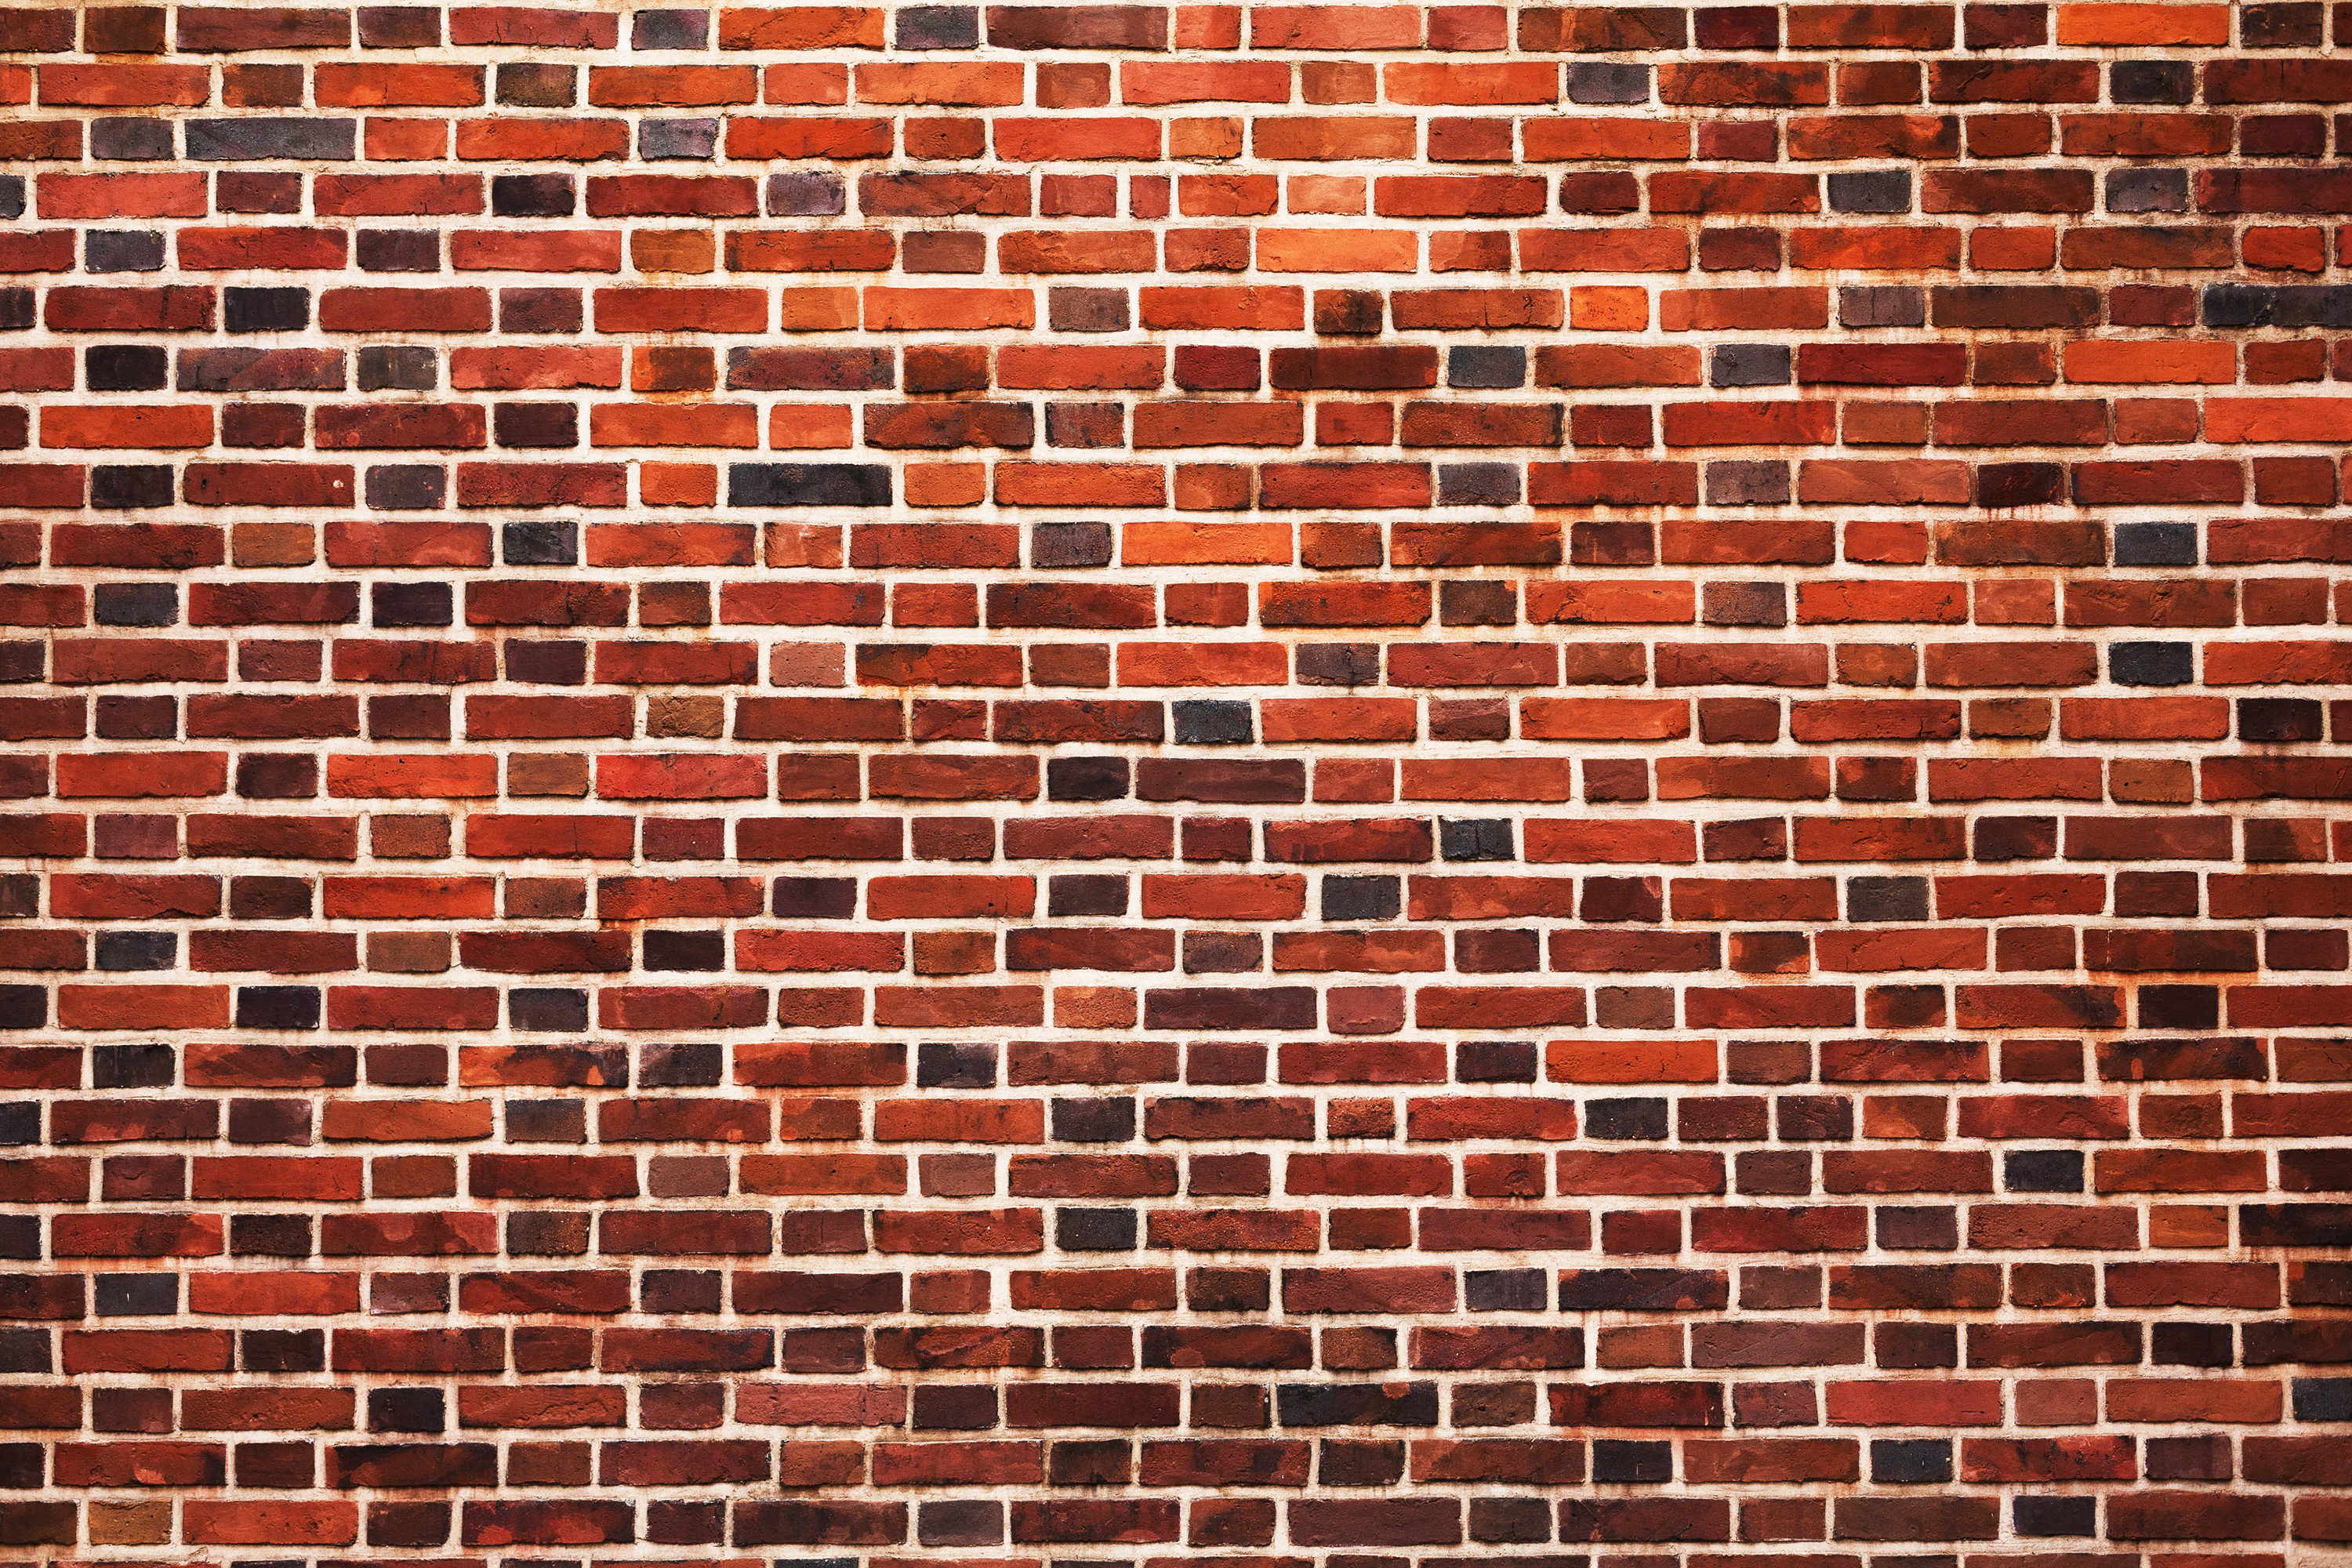 3000x2000 Brick Wall Design Patterns Delectable Texture Photoshop Download